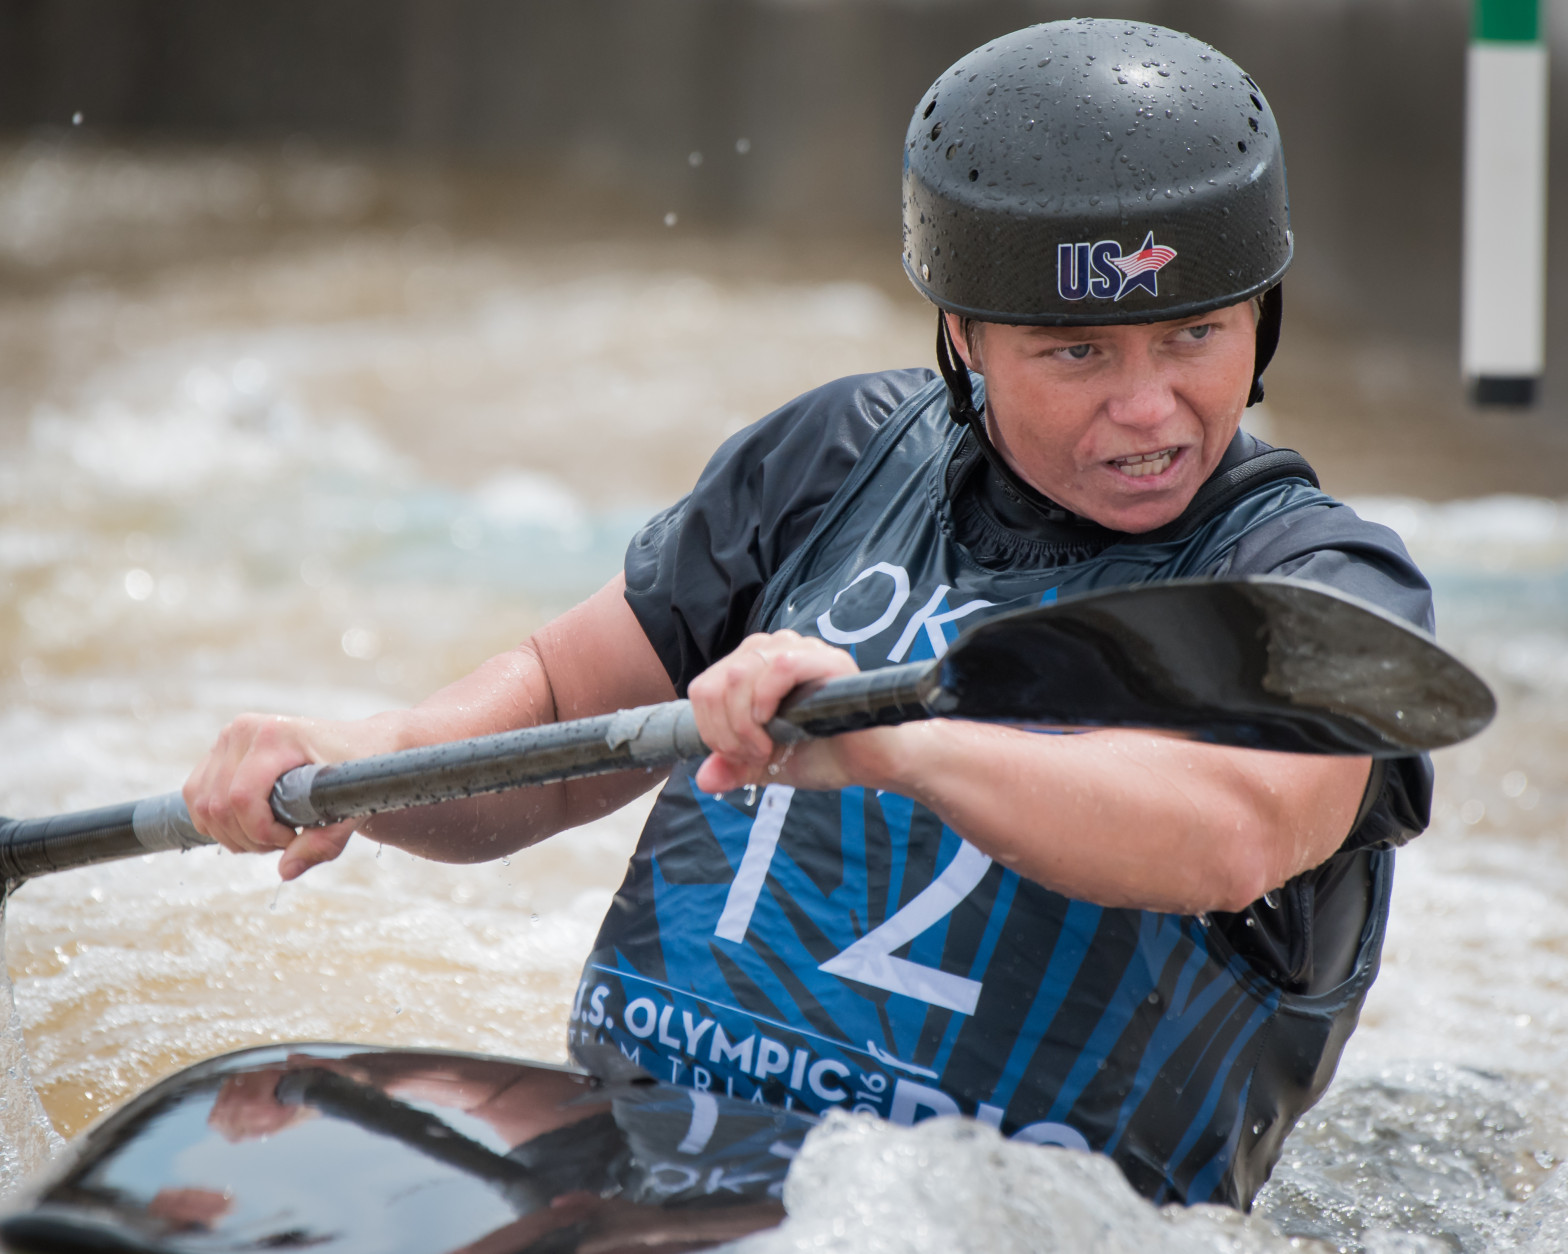 Ashley Nee competing in the Olympic trails in Oklahoma City, where she finished in first place. (Courtesy Tom Dunning)